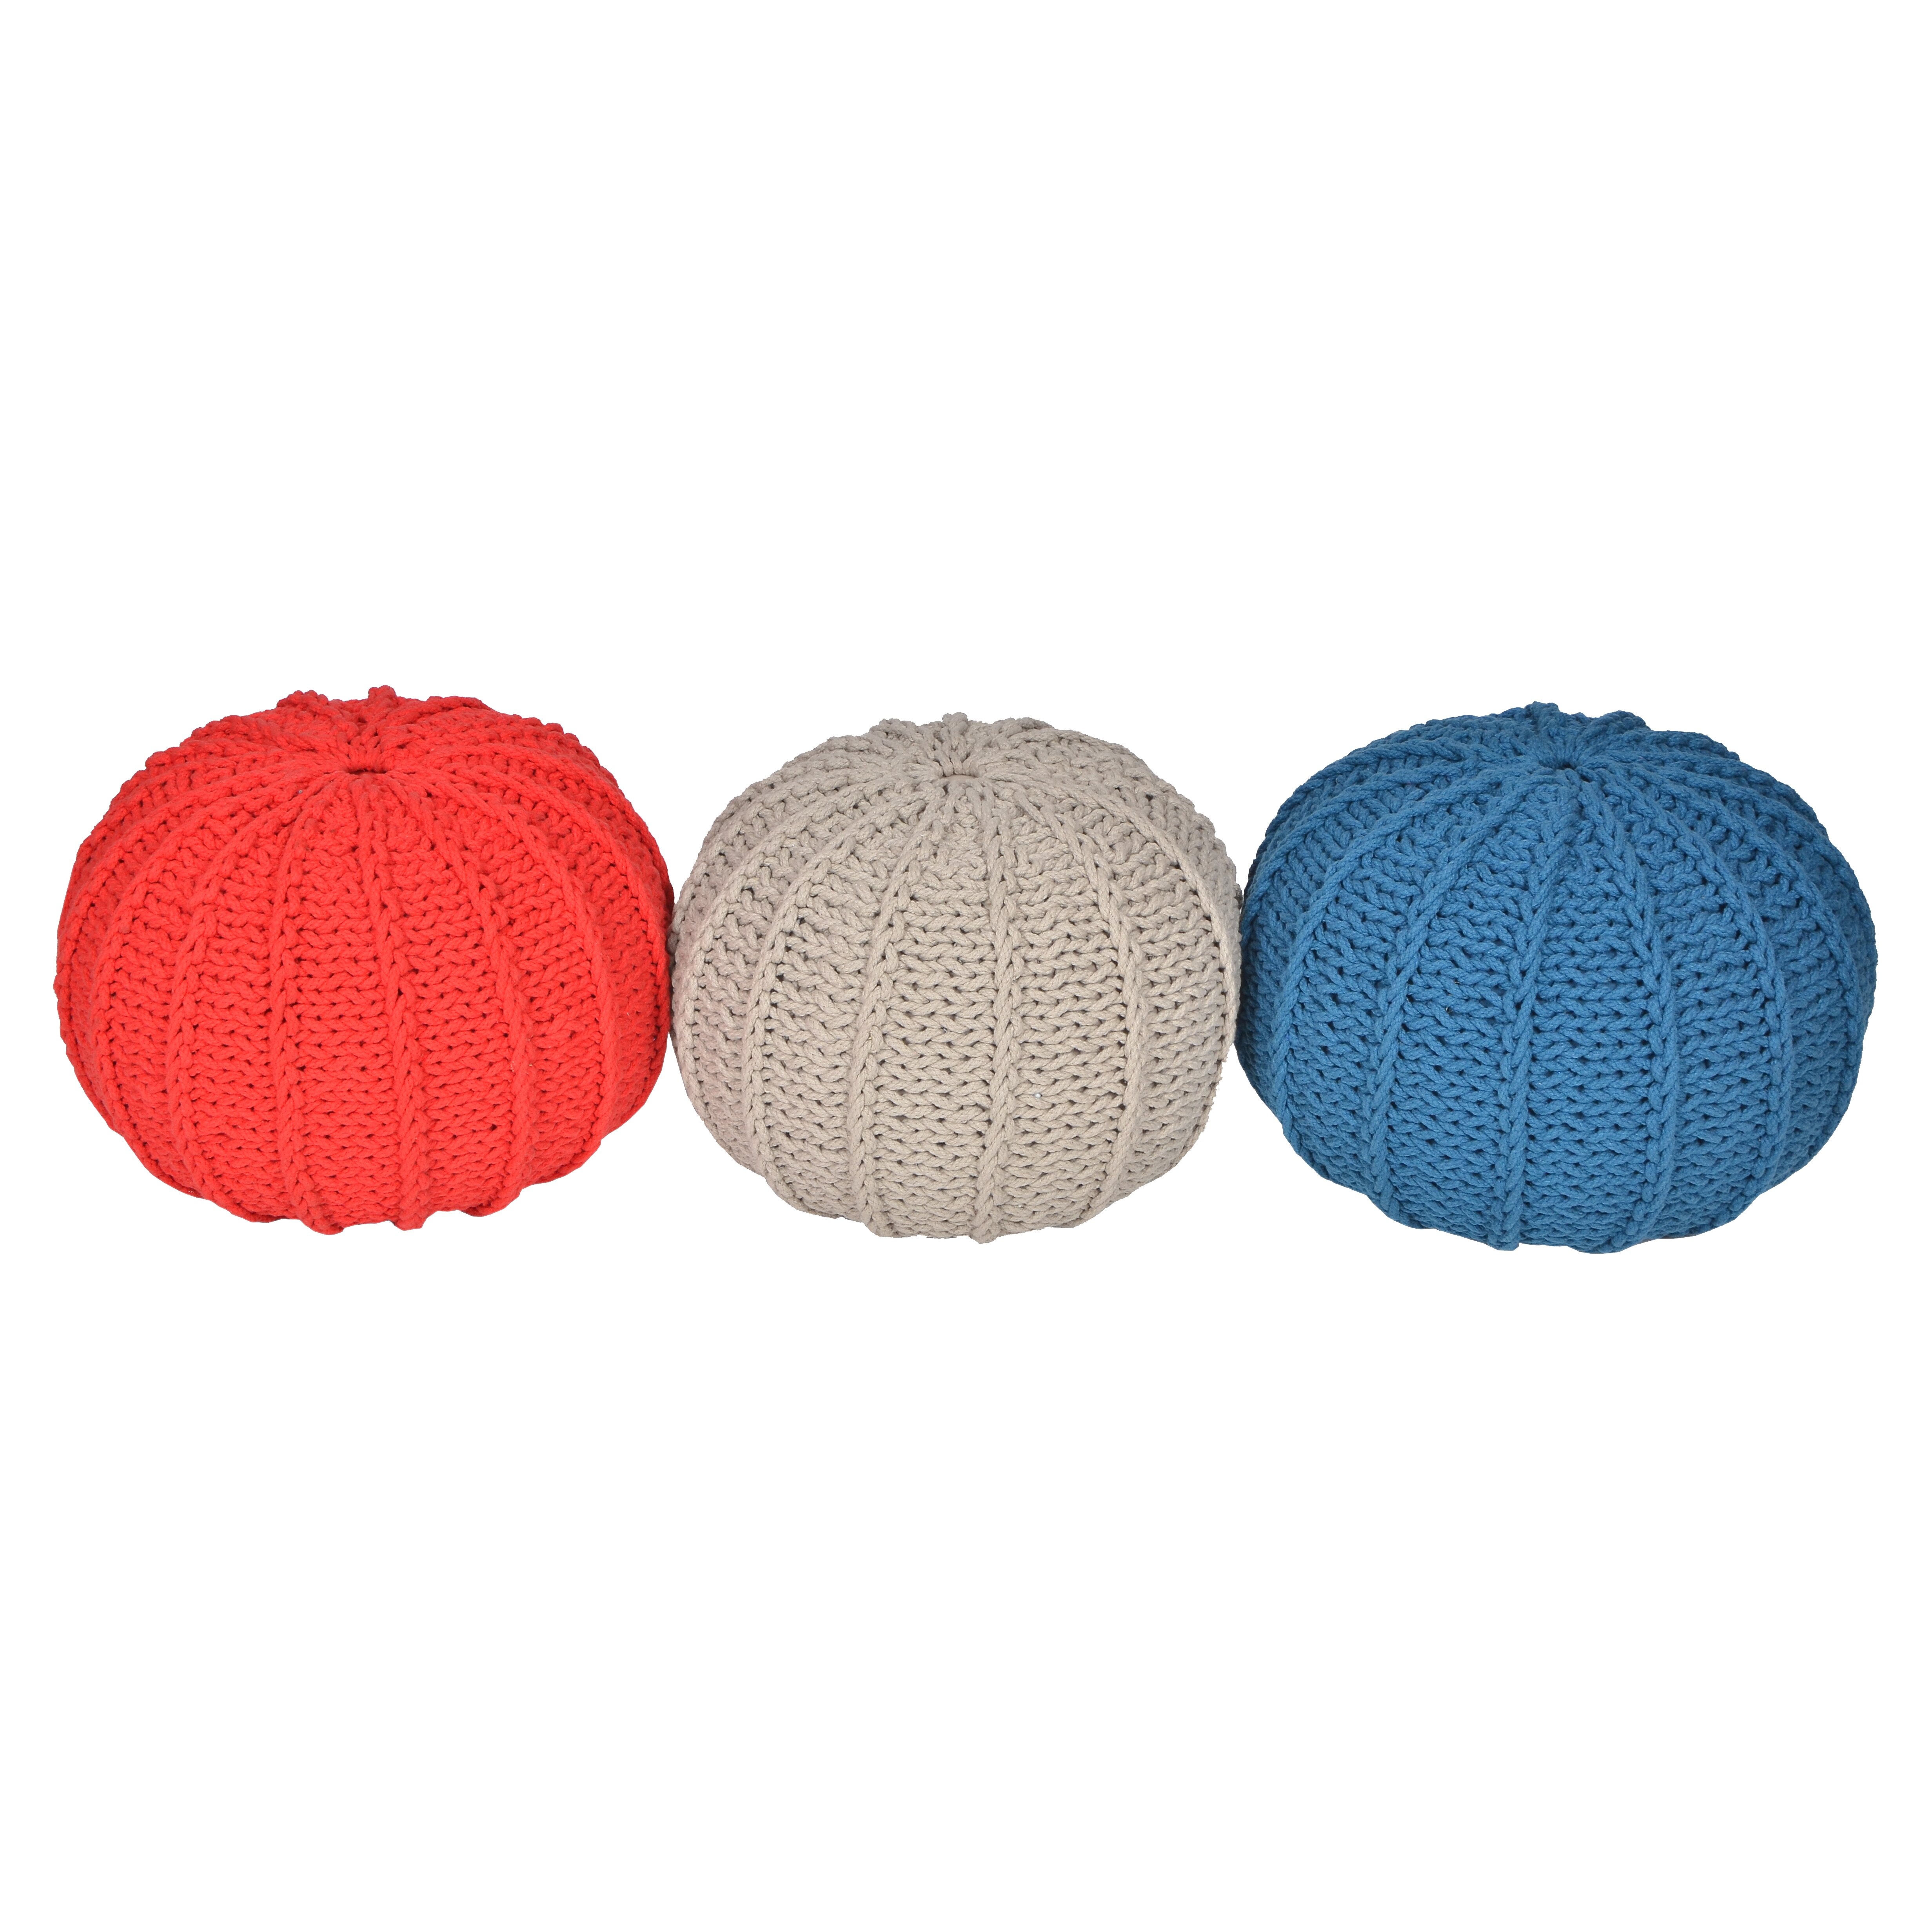 Knitting Pattern For Round Pouf : VCNY Cable Knitted Round Pouf & Reviews Wayfair.ca